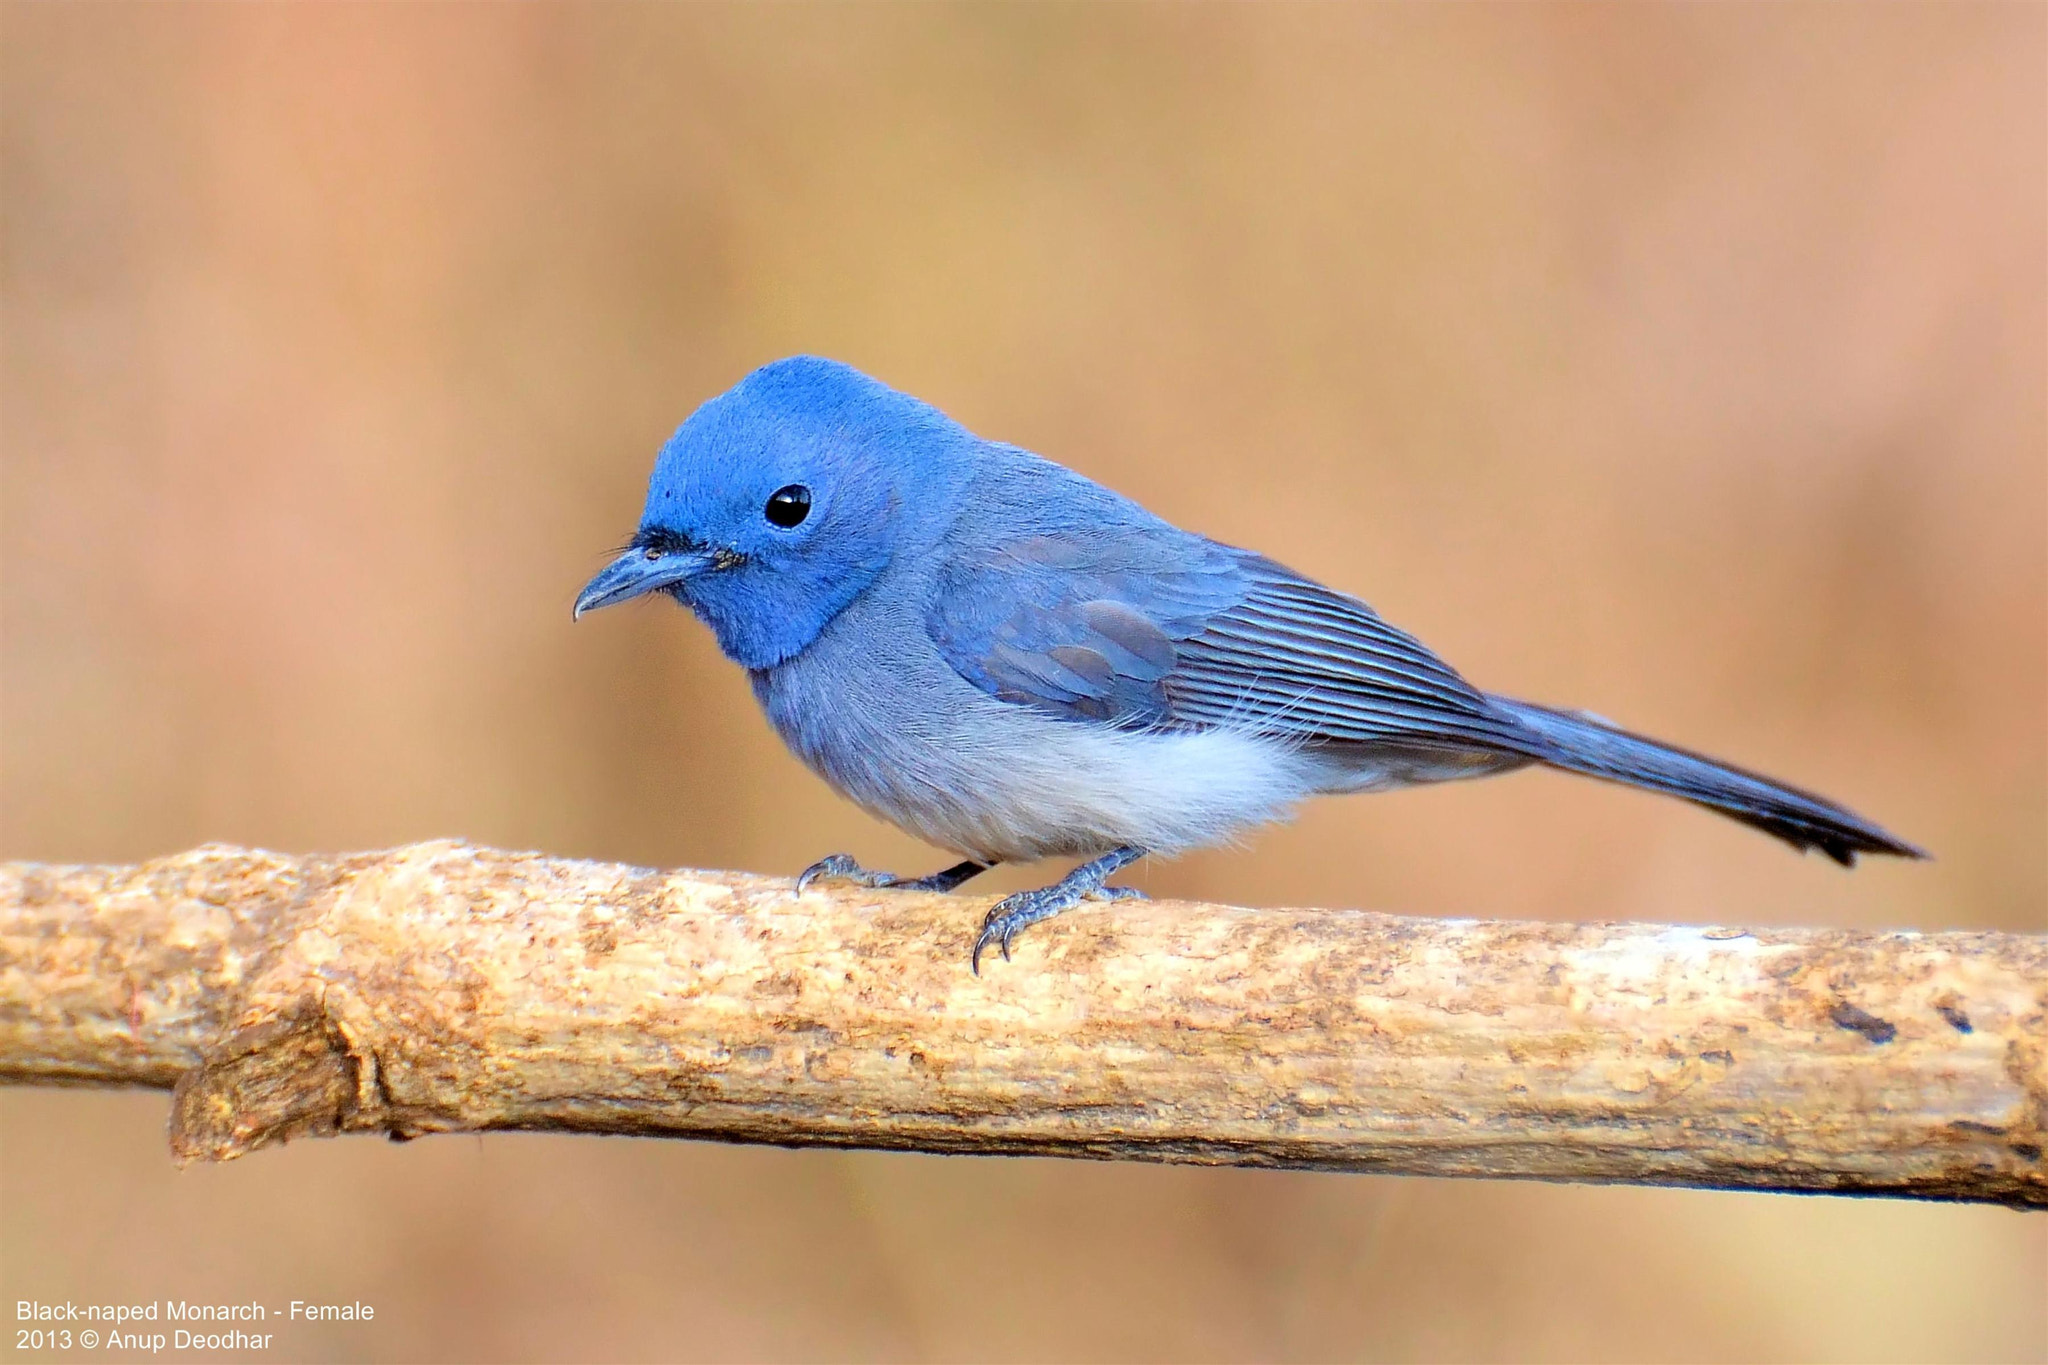 Photograph Black-naped Monarch - Female by Anup Deodhar on 500px